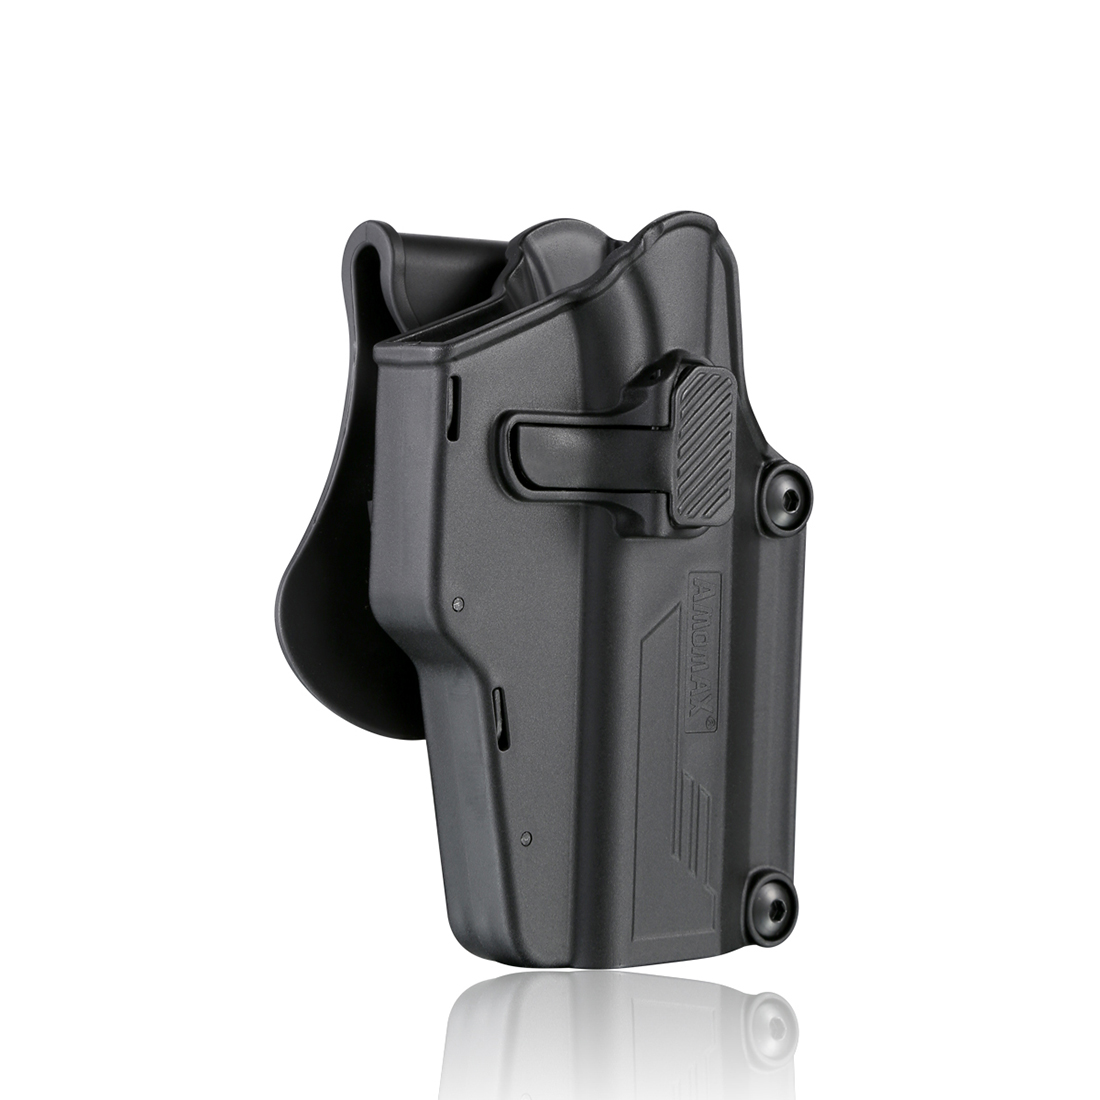 Amomax Adjustable Universal Tactical Holster - Right-Handed Black (Standard Only With Waist Plate, No Other Accessories)